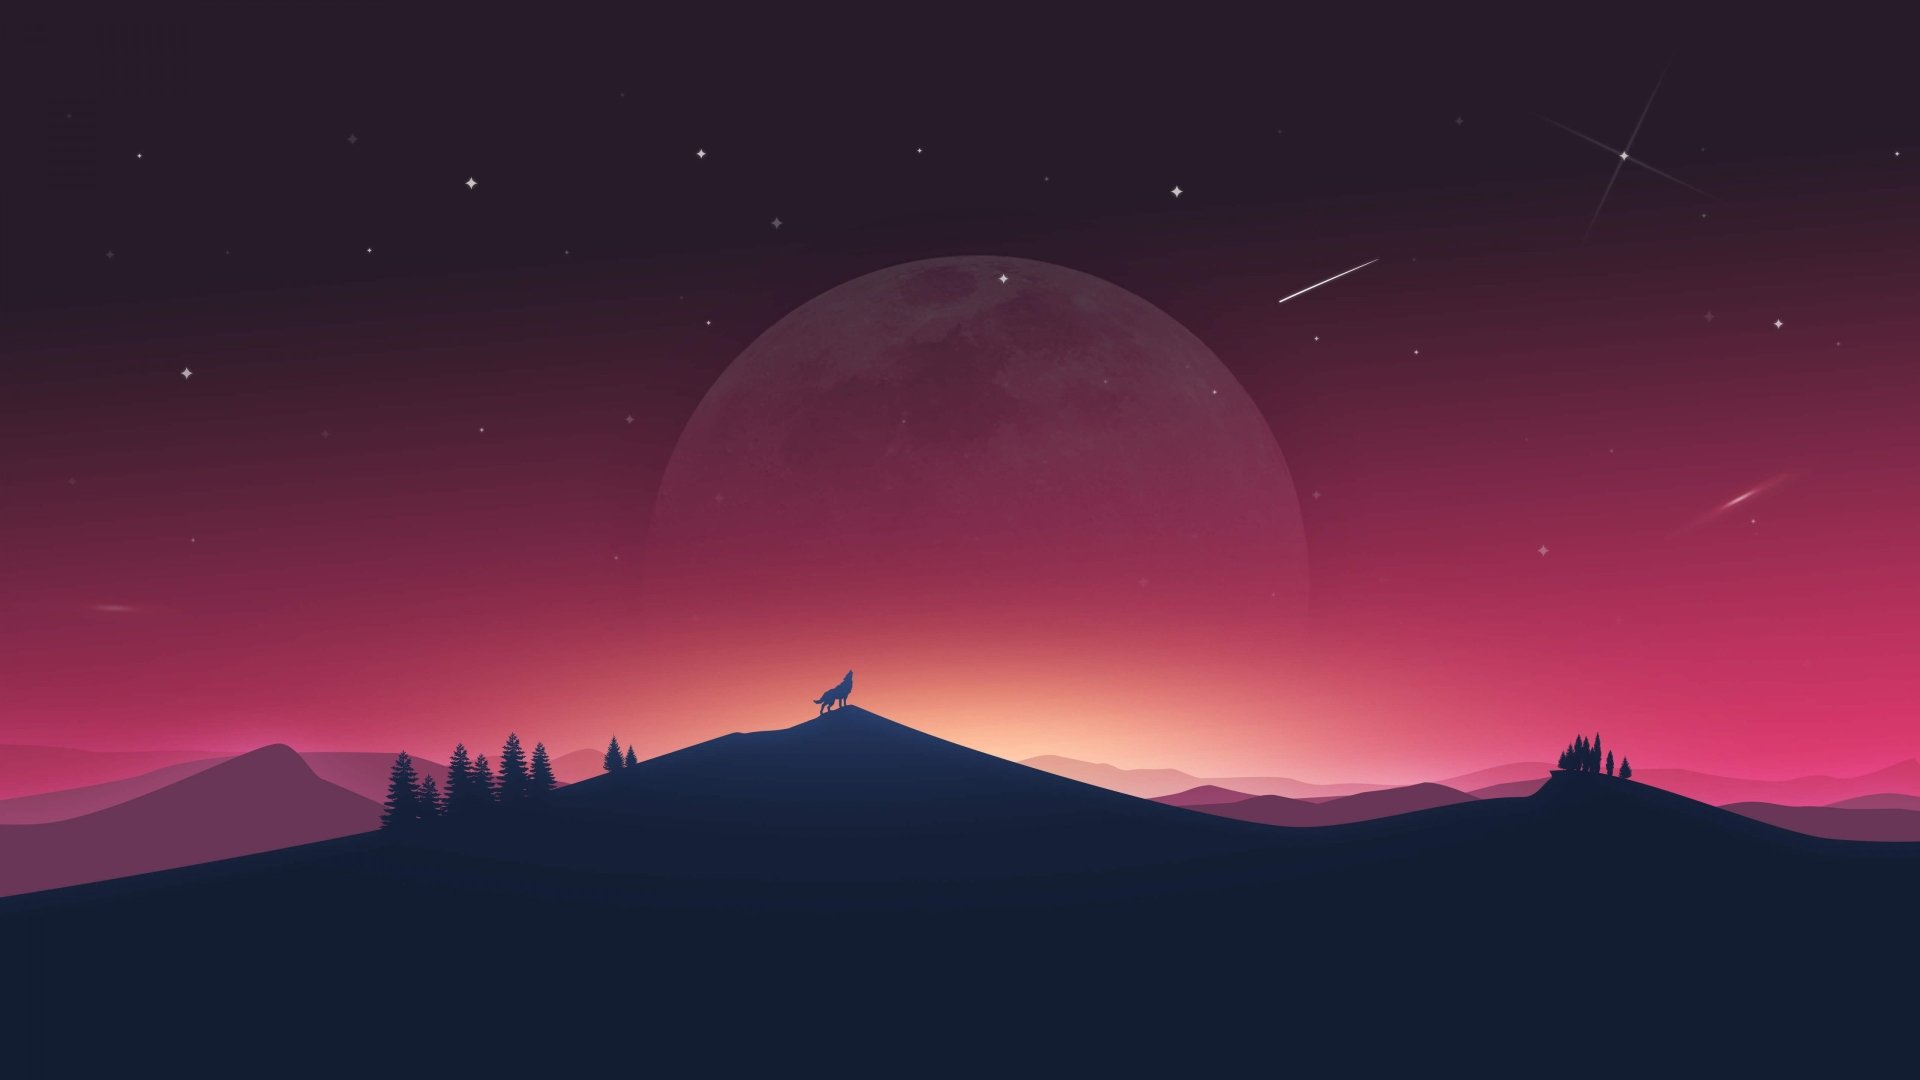 Fantasy - Wolf  Animal Silhouette Landscape Nature Night Sky Moon Wallpaper